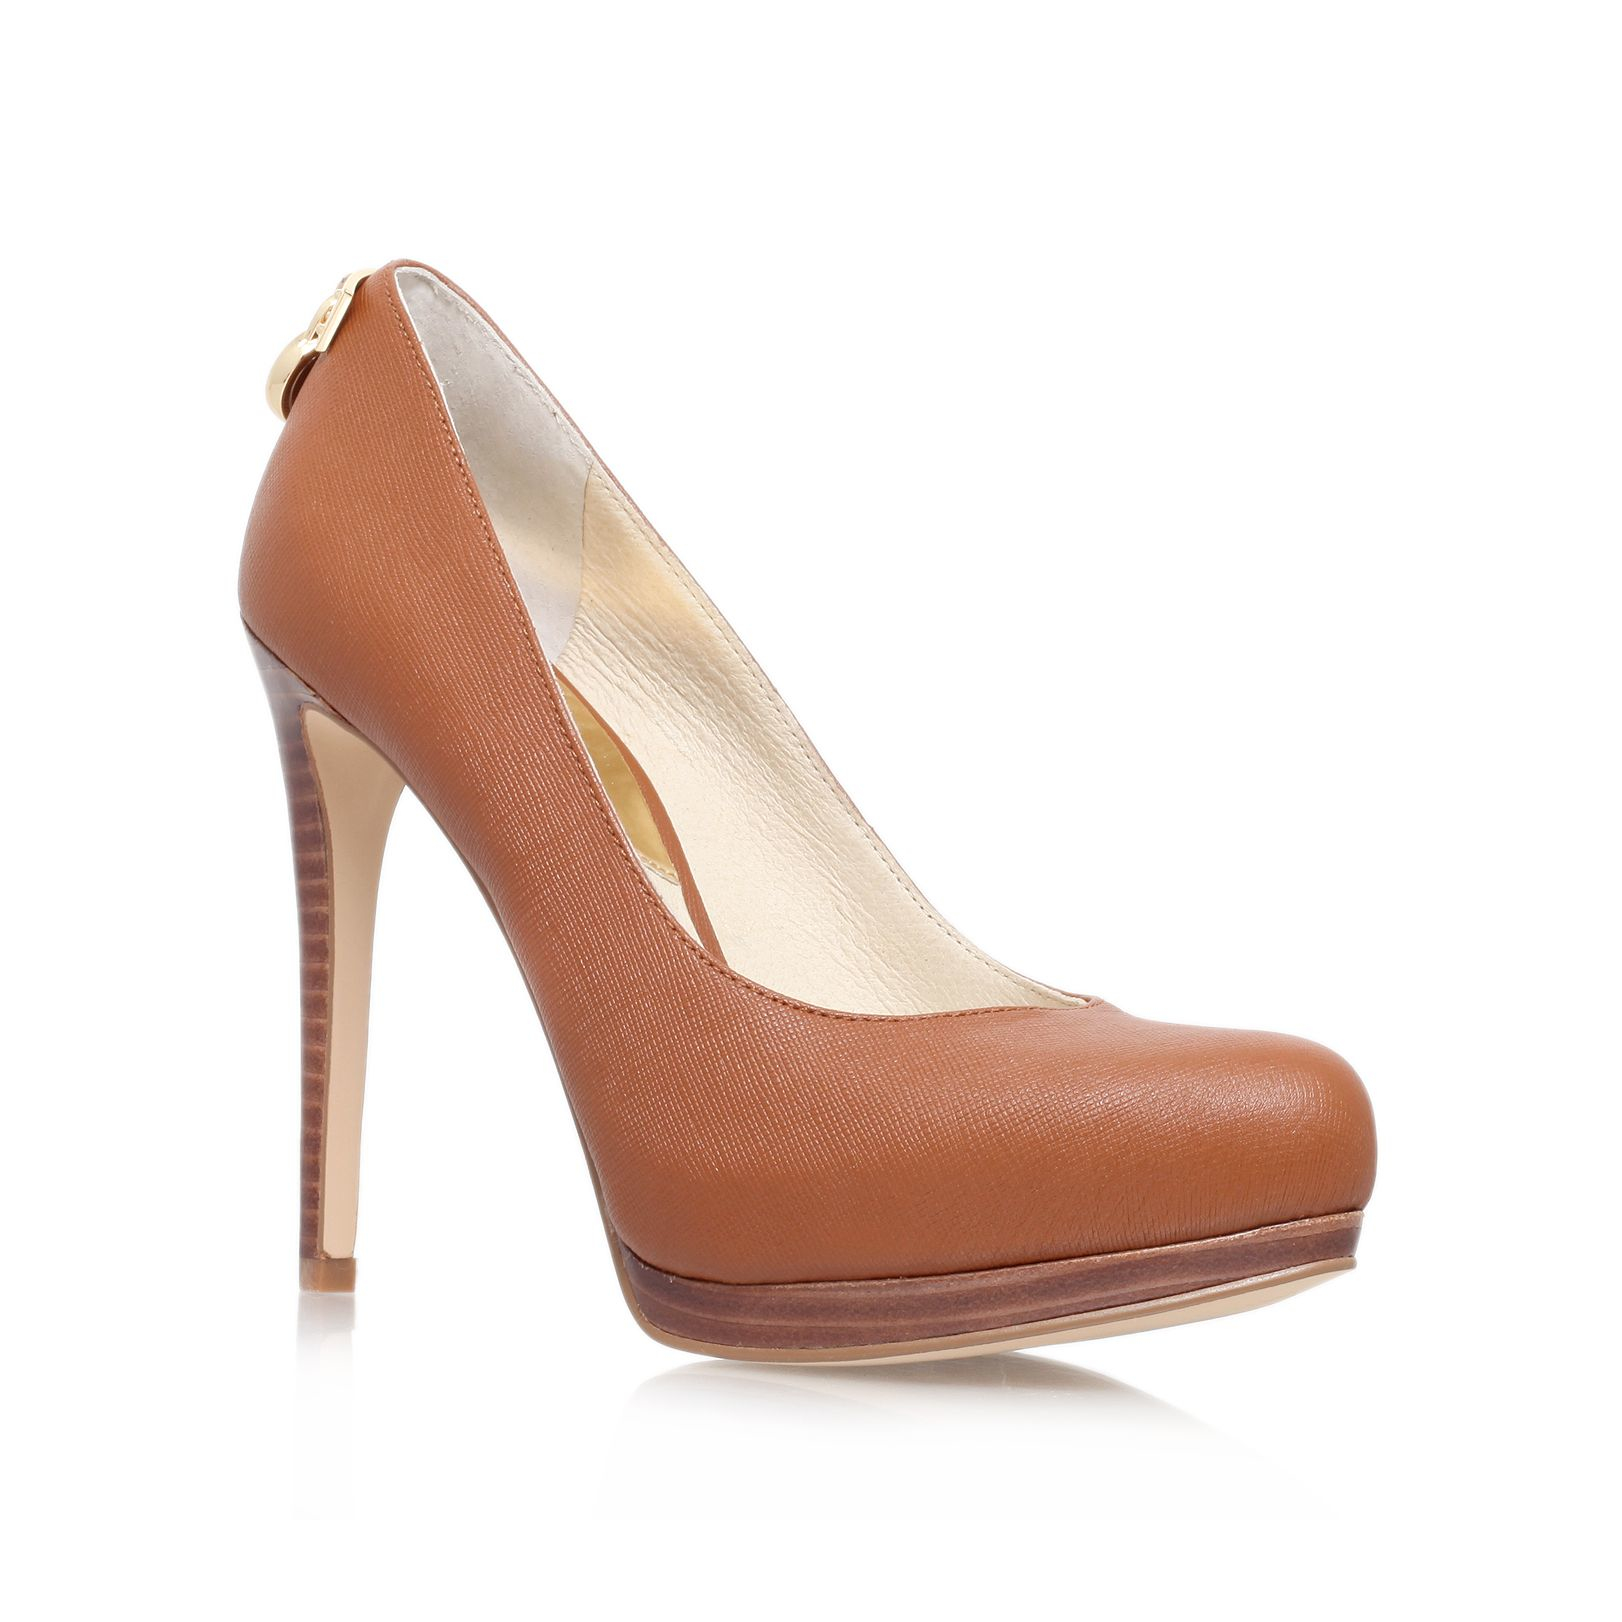 michael kors hamilton high heeled court shoes in brown lyst